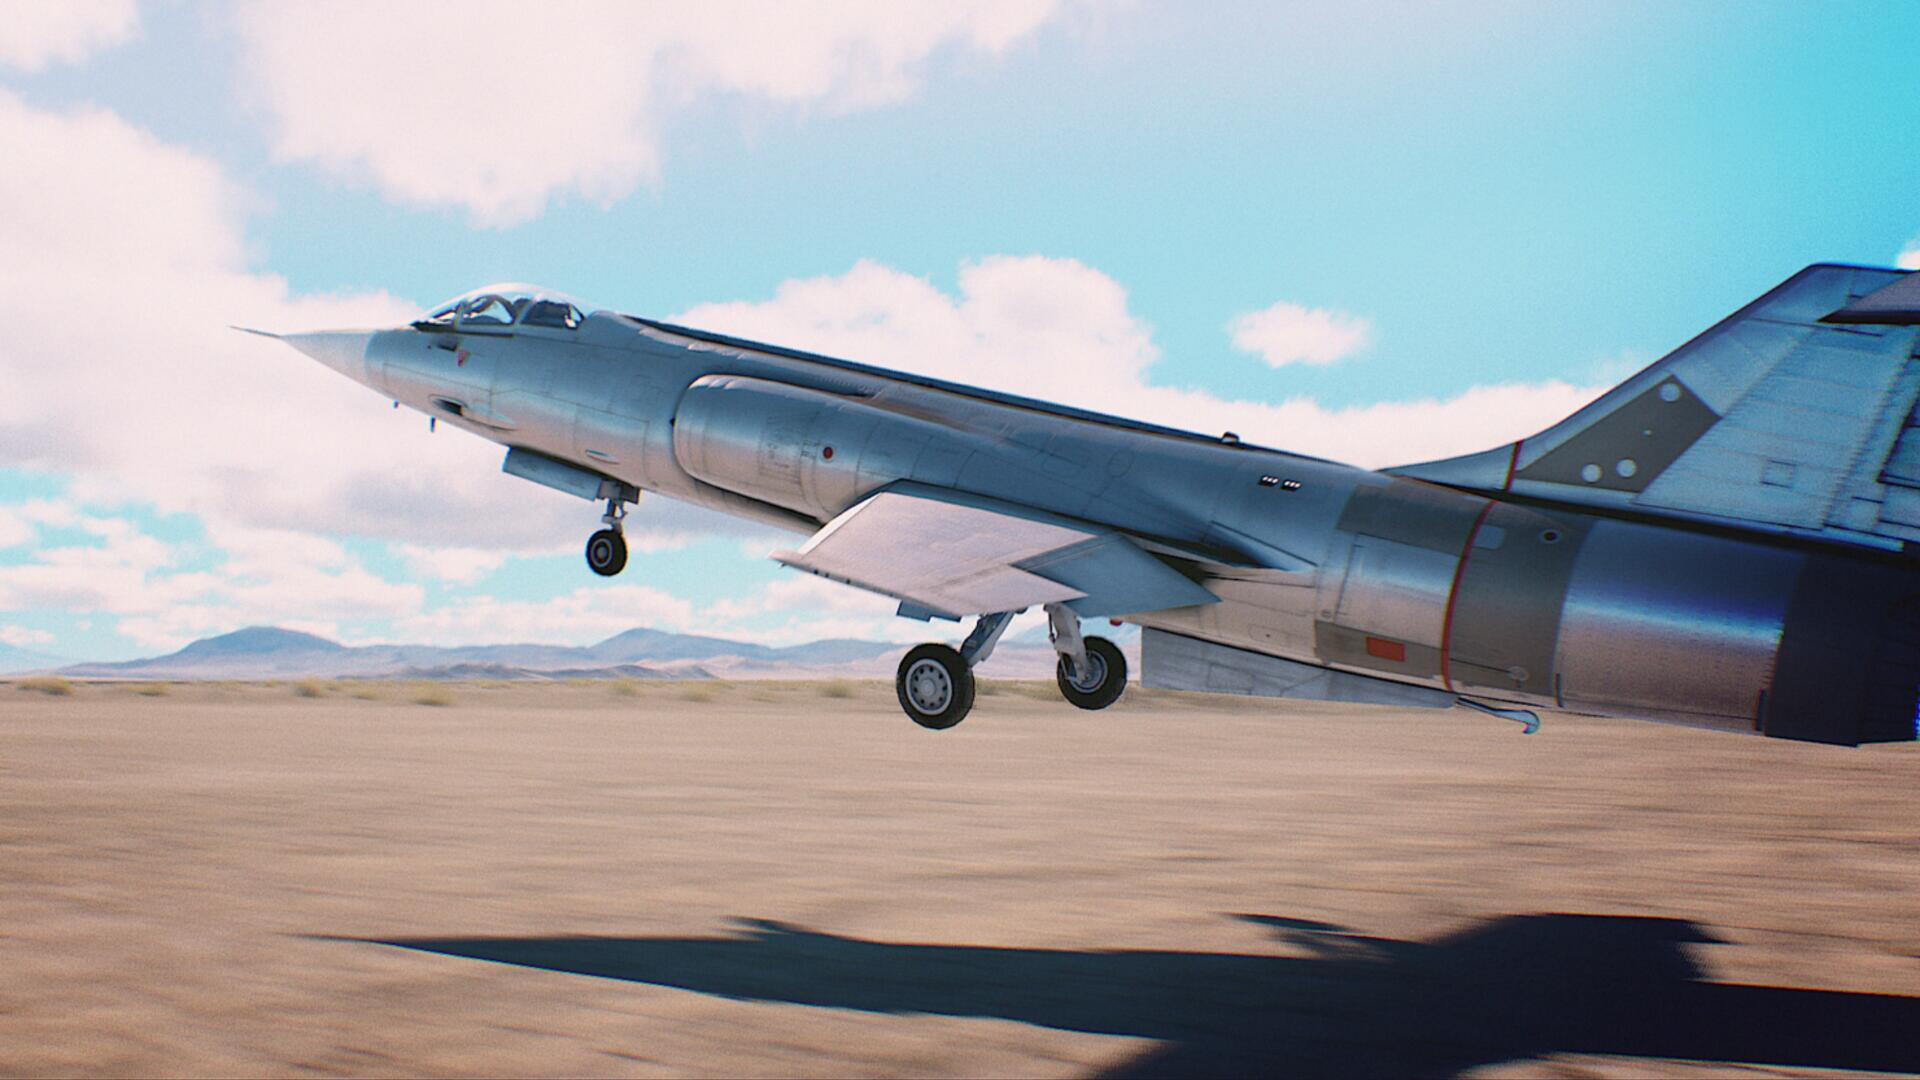 Ace Combat 7 Will Launch in January For PS4 and PSVR, Xbox